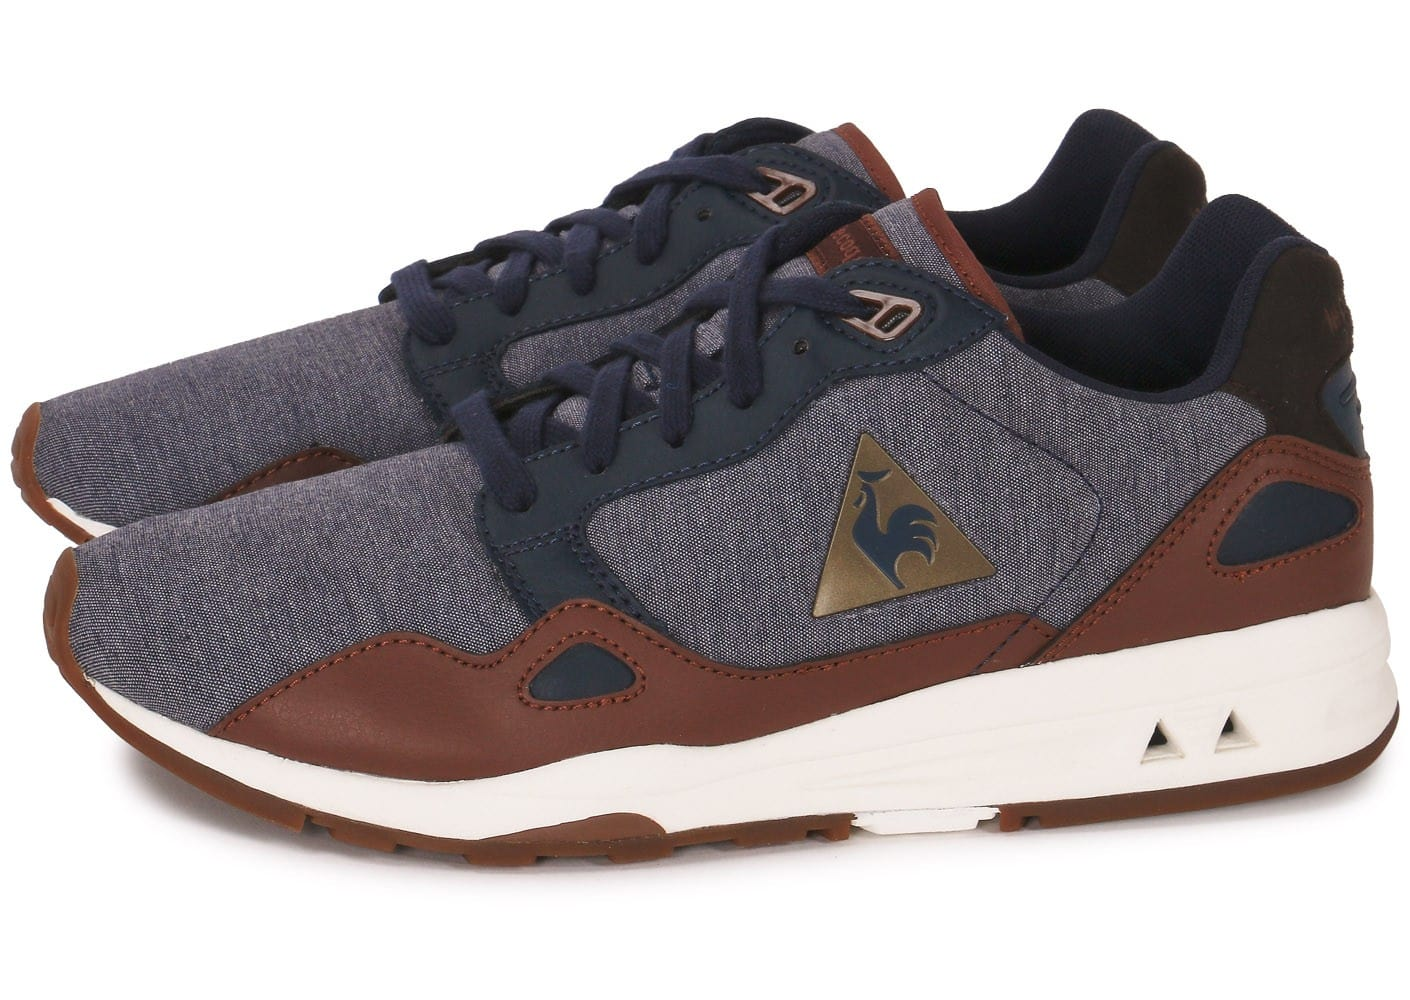 le coq sportif lcs r900 casual bleue chaussures homme chausport. Black Bedroom Furniture Sets. Home Design Ideas